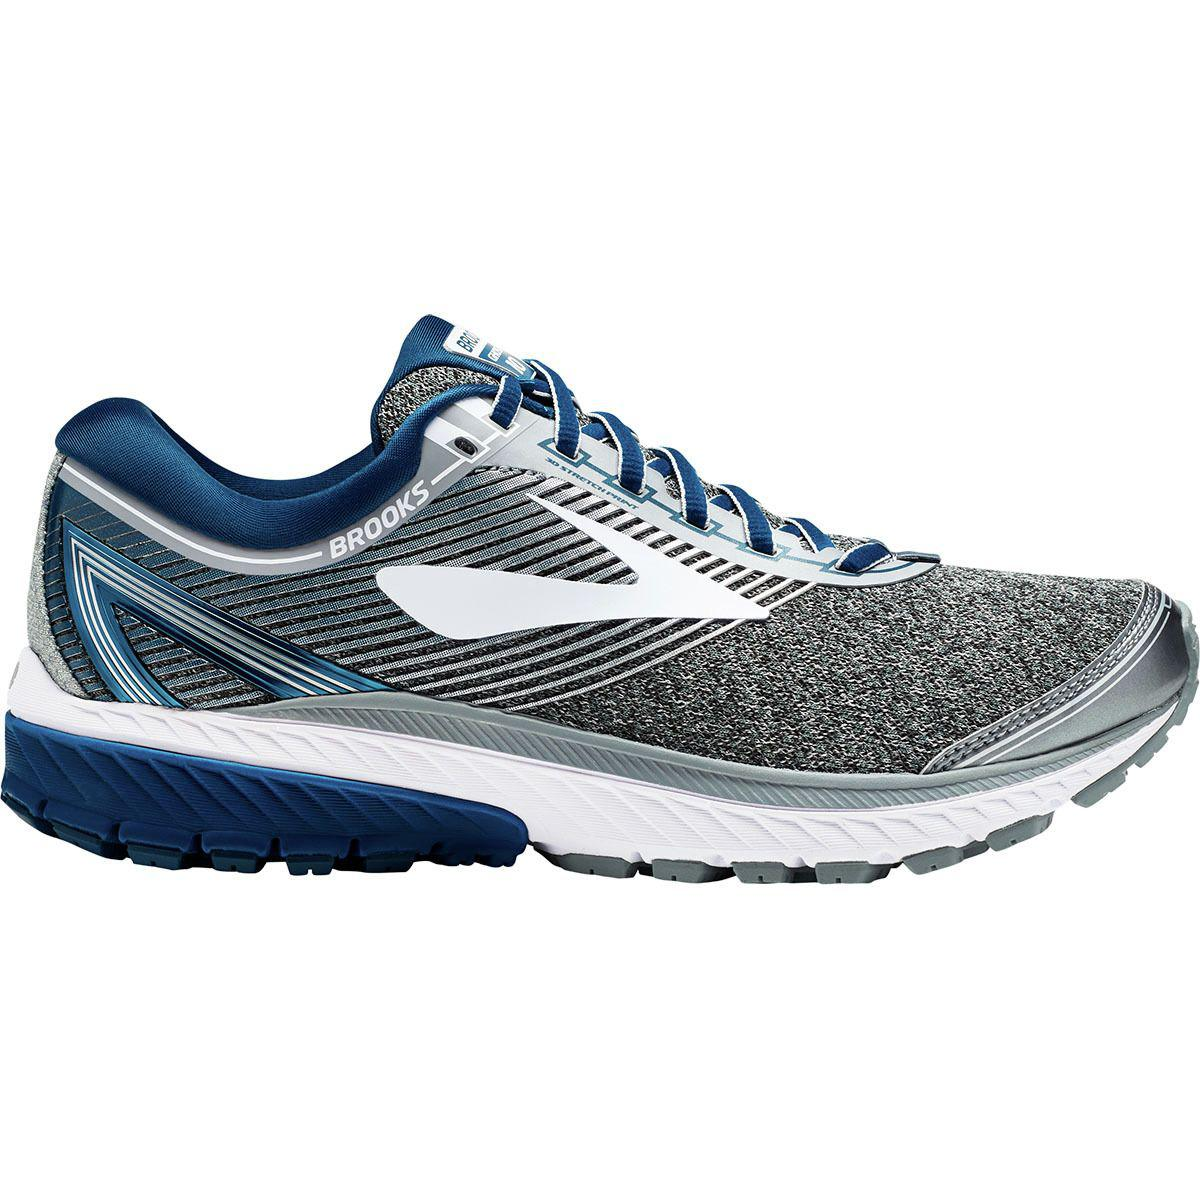 8c29ac3db9a Lyst - Brooks Ghost 10 Running Shoe in Blue for Men